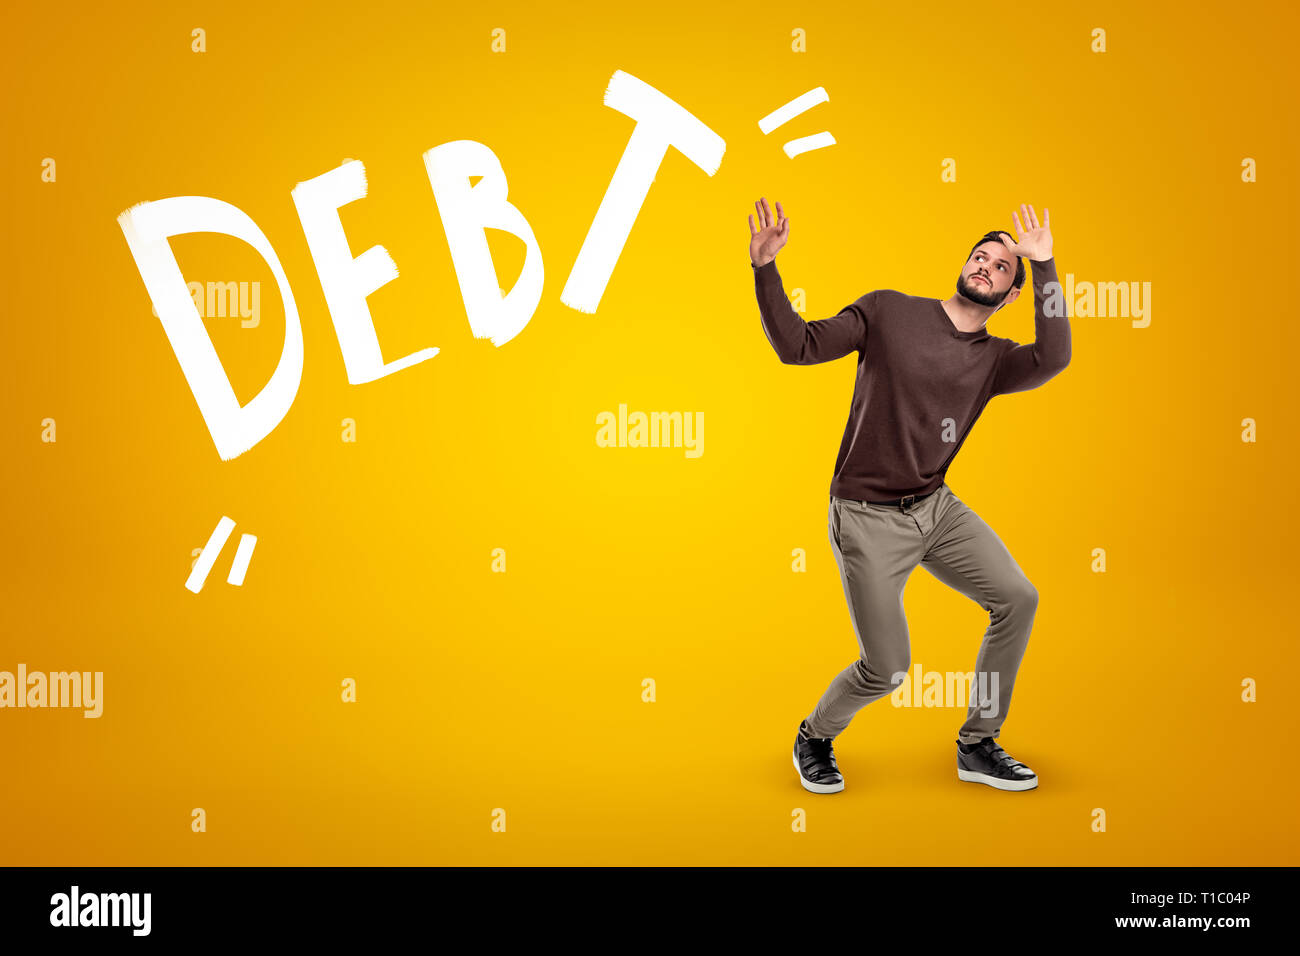 Young man wearing casual clothes protecting himself with hands from DEBT sign on yellow background - Stock Image